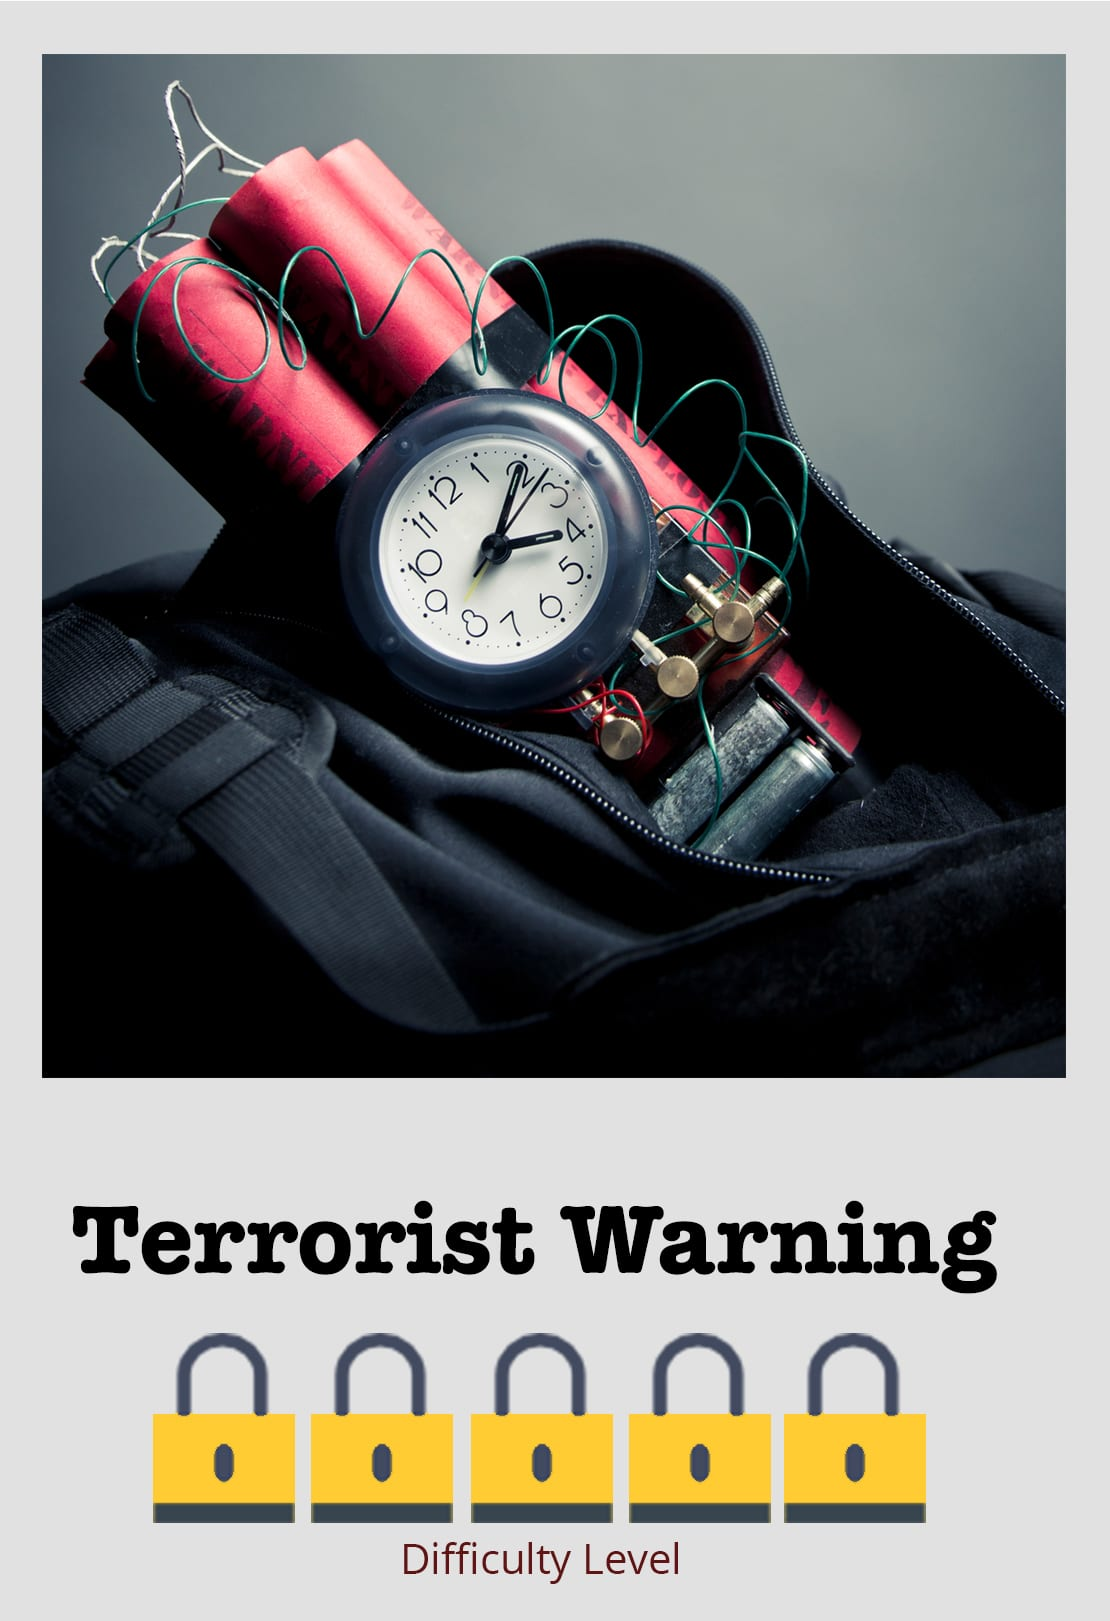 terrorist-warning-home-5-lock-rating